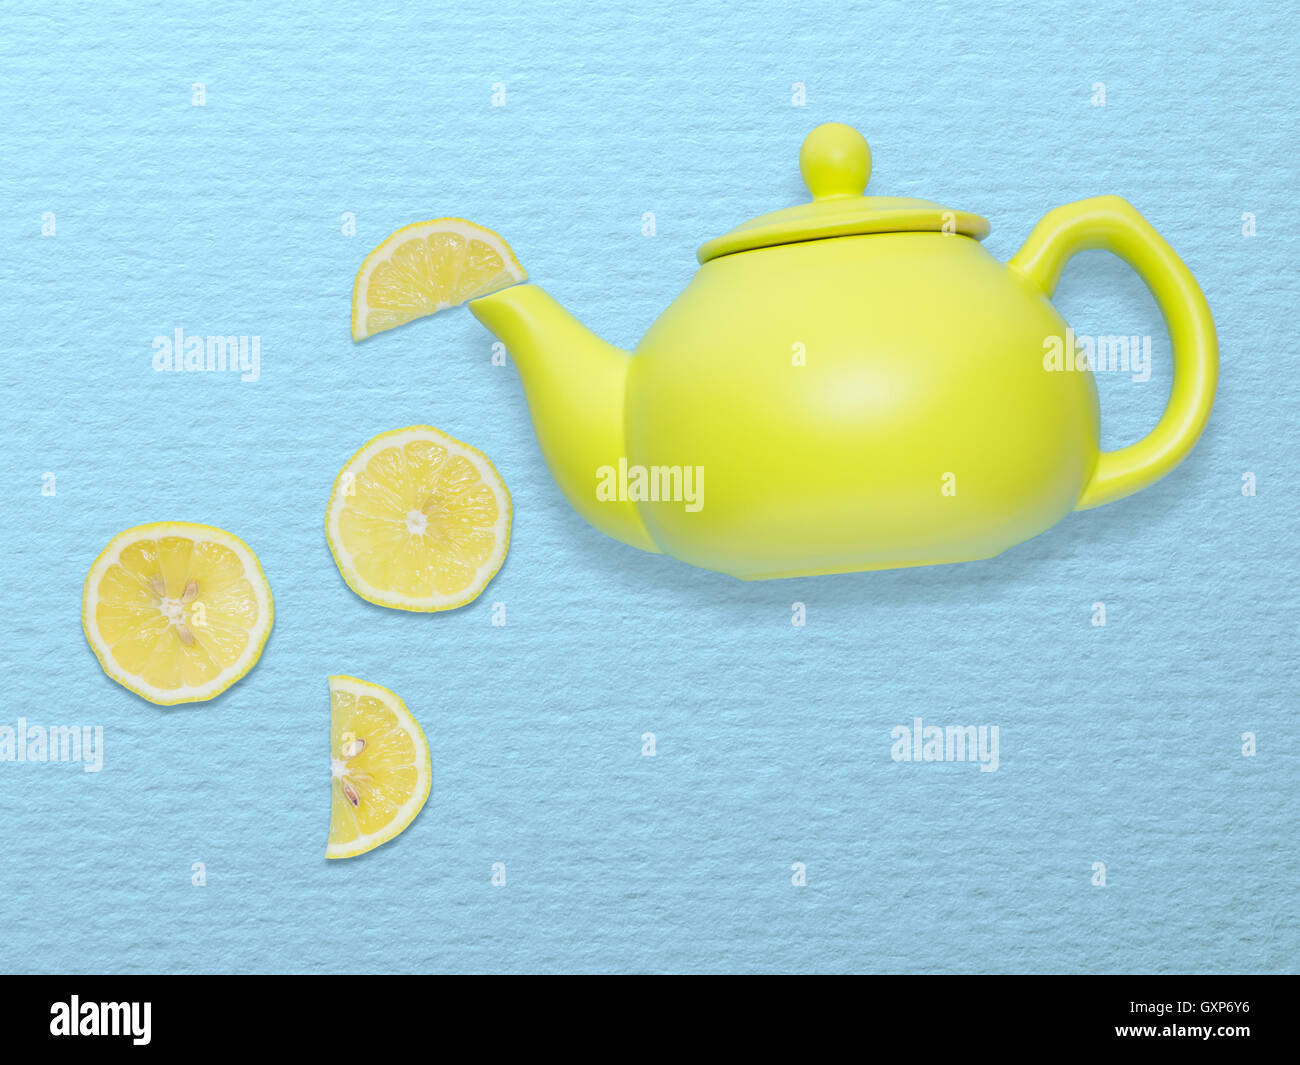 Creative concept photo of a tea pot with lemon slices on blue background. - Stock Image